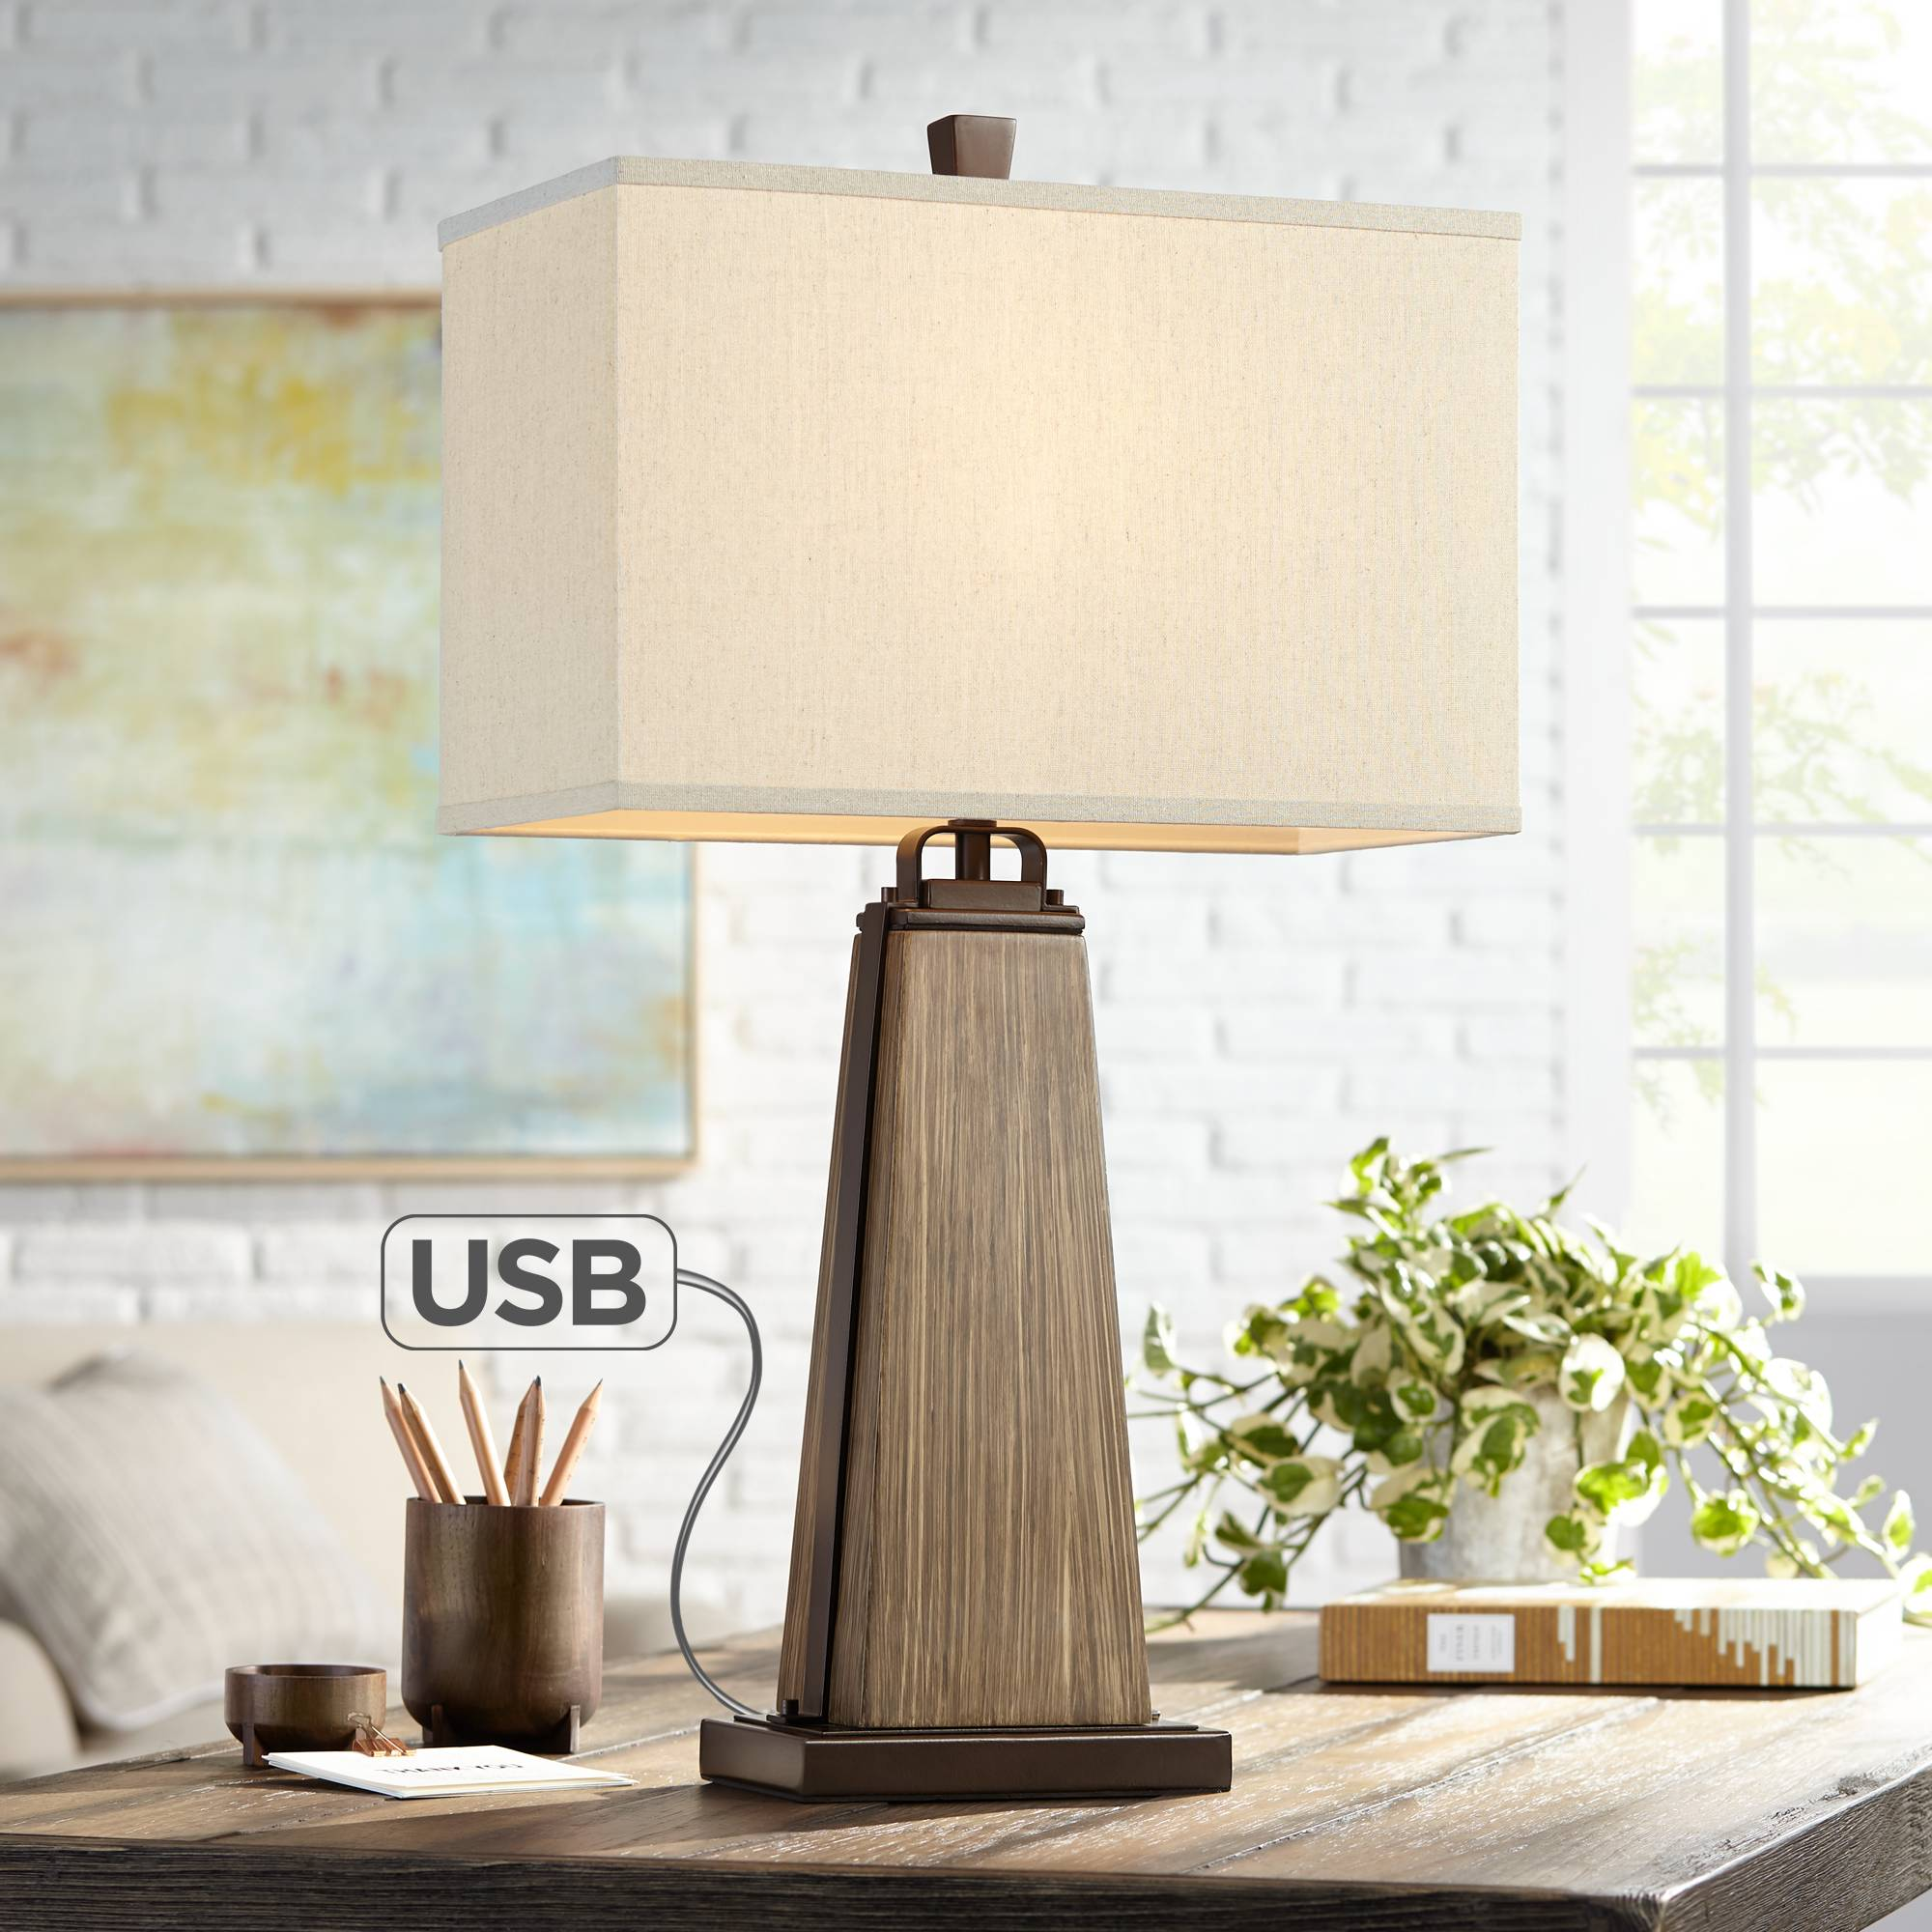 rustic farmhouse table lamp with usb port brown faux wood